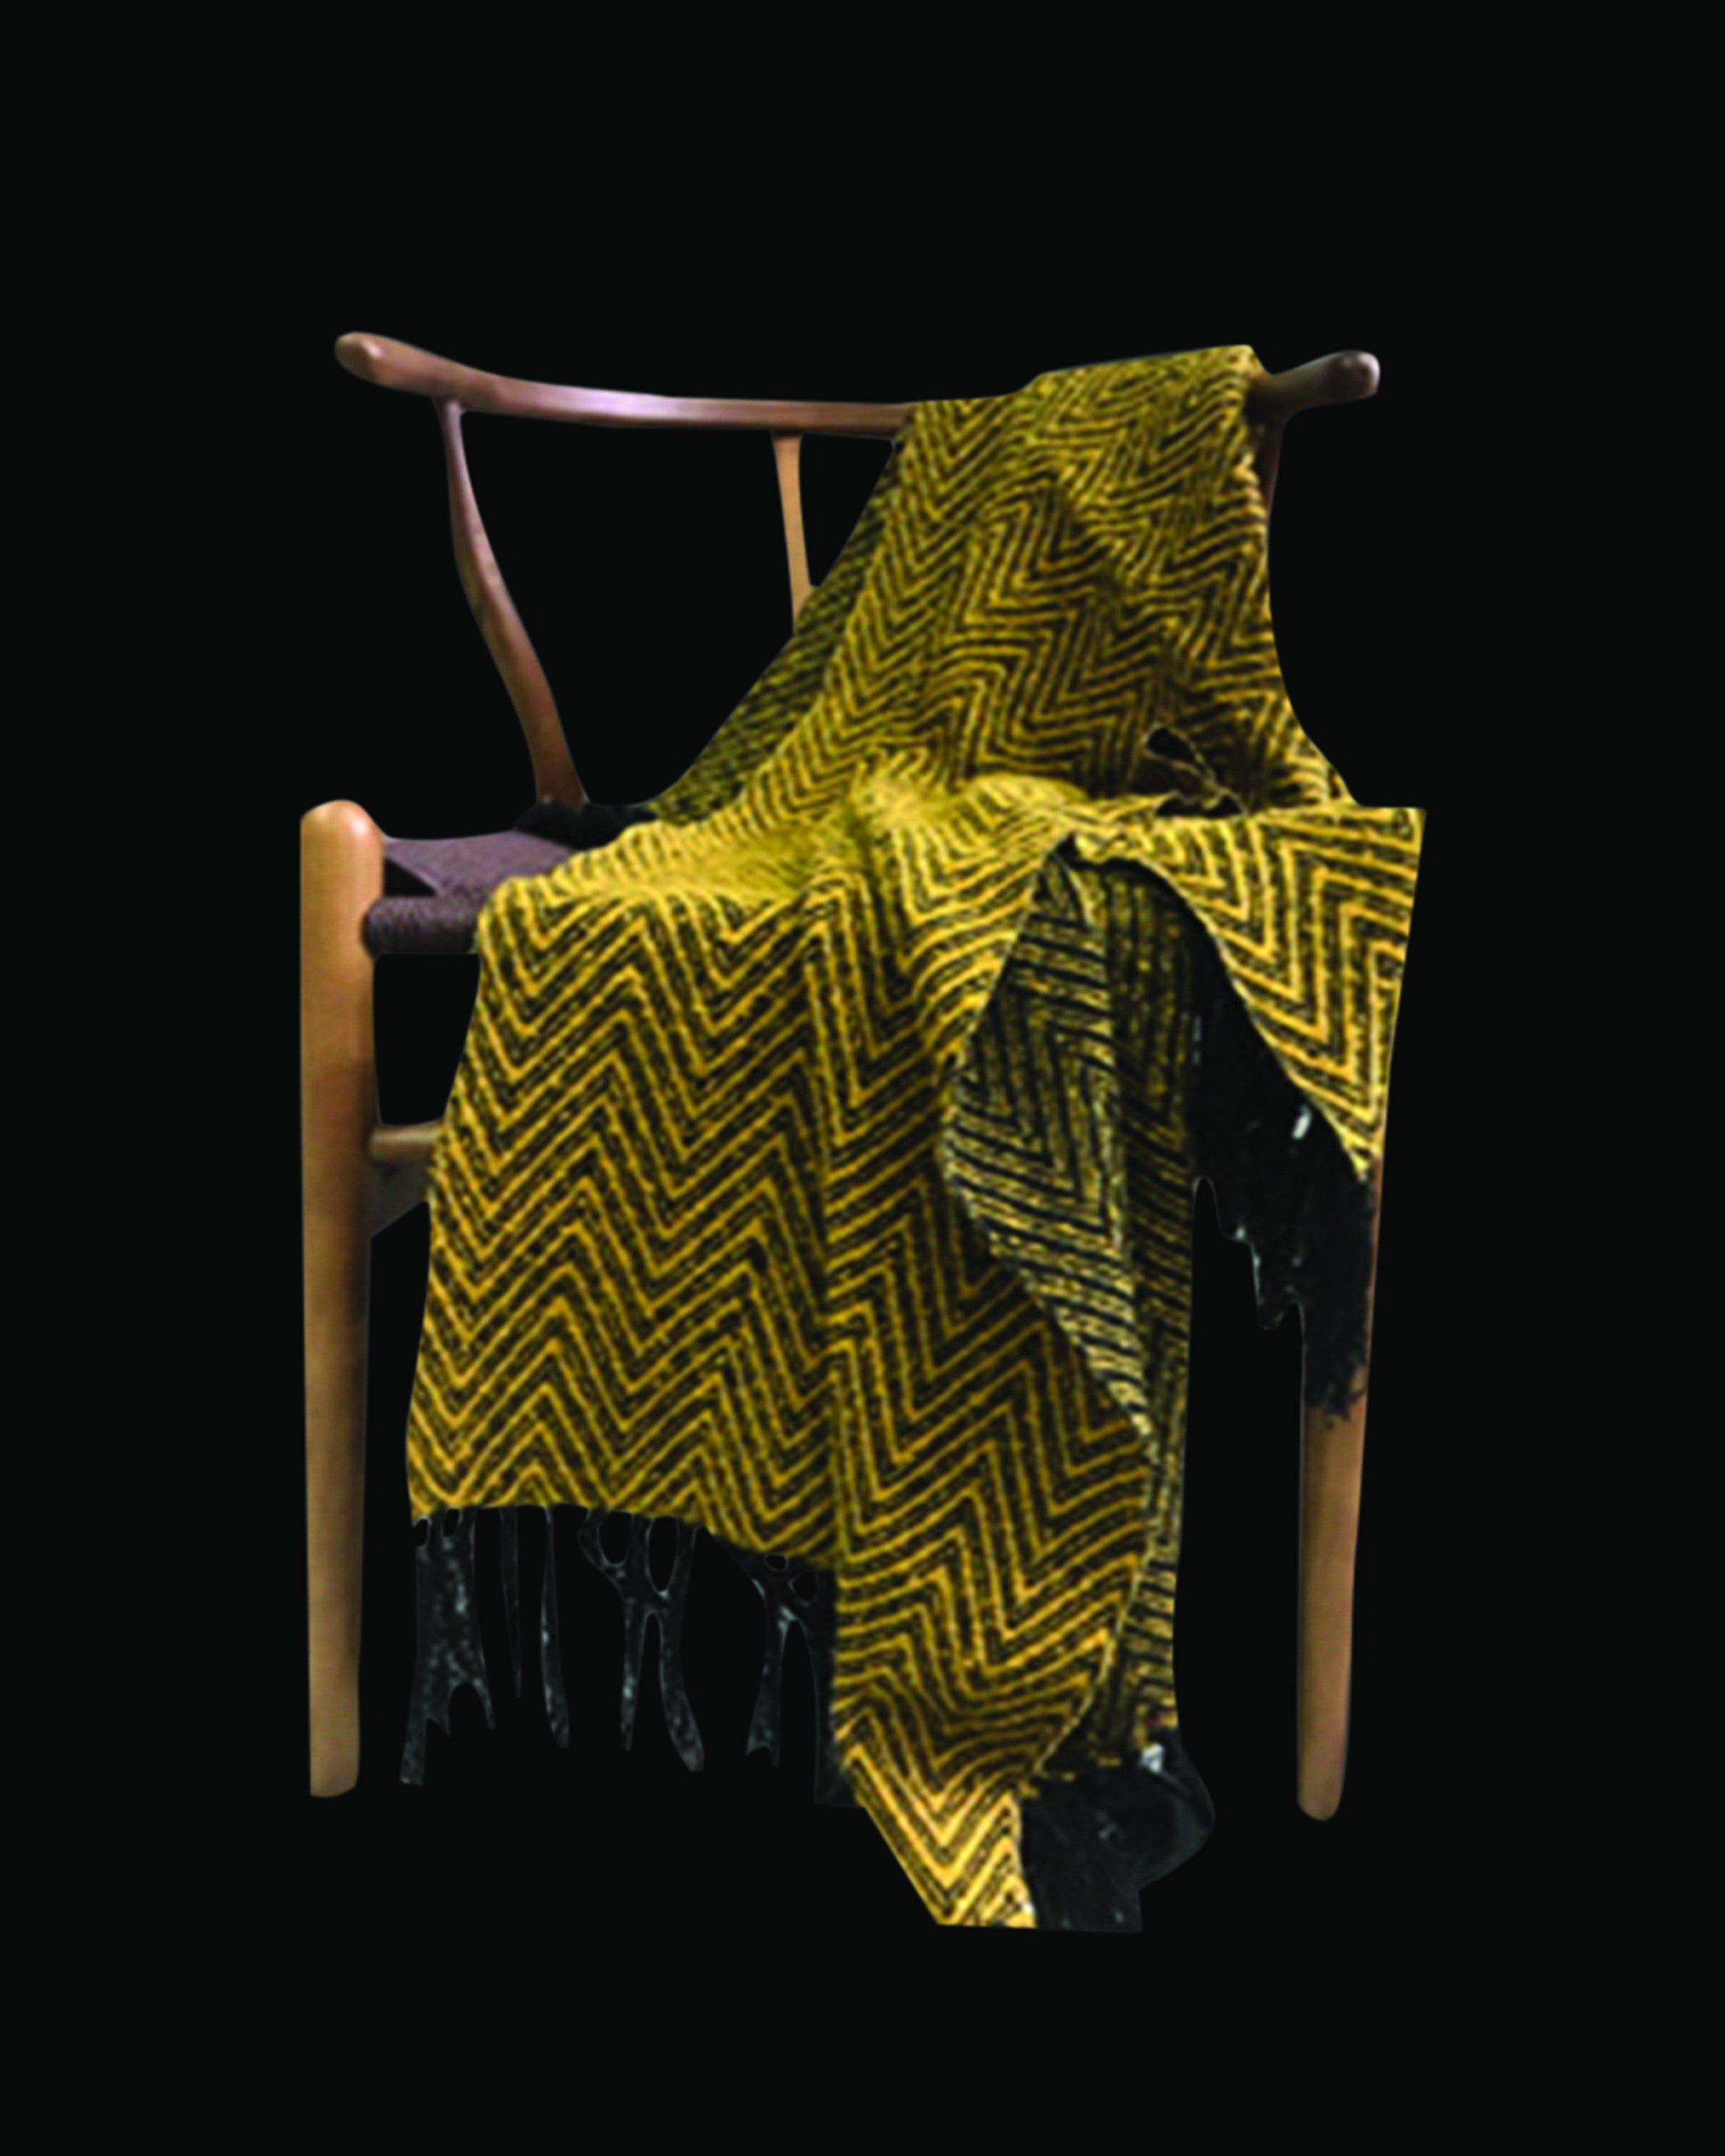 CLOVE  LUXURY  YELLOW & GREY THROWS- BLANKETS- ANGIE HOMES ANGIE HOMES